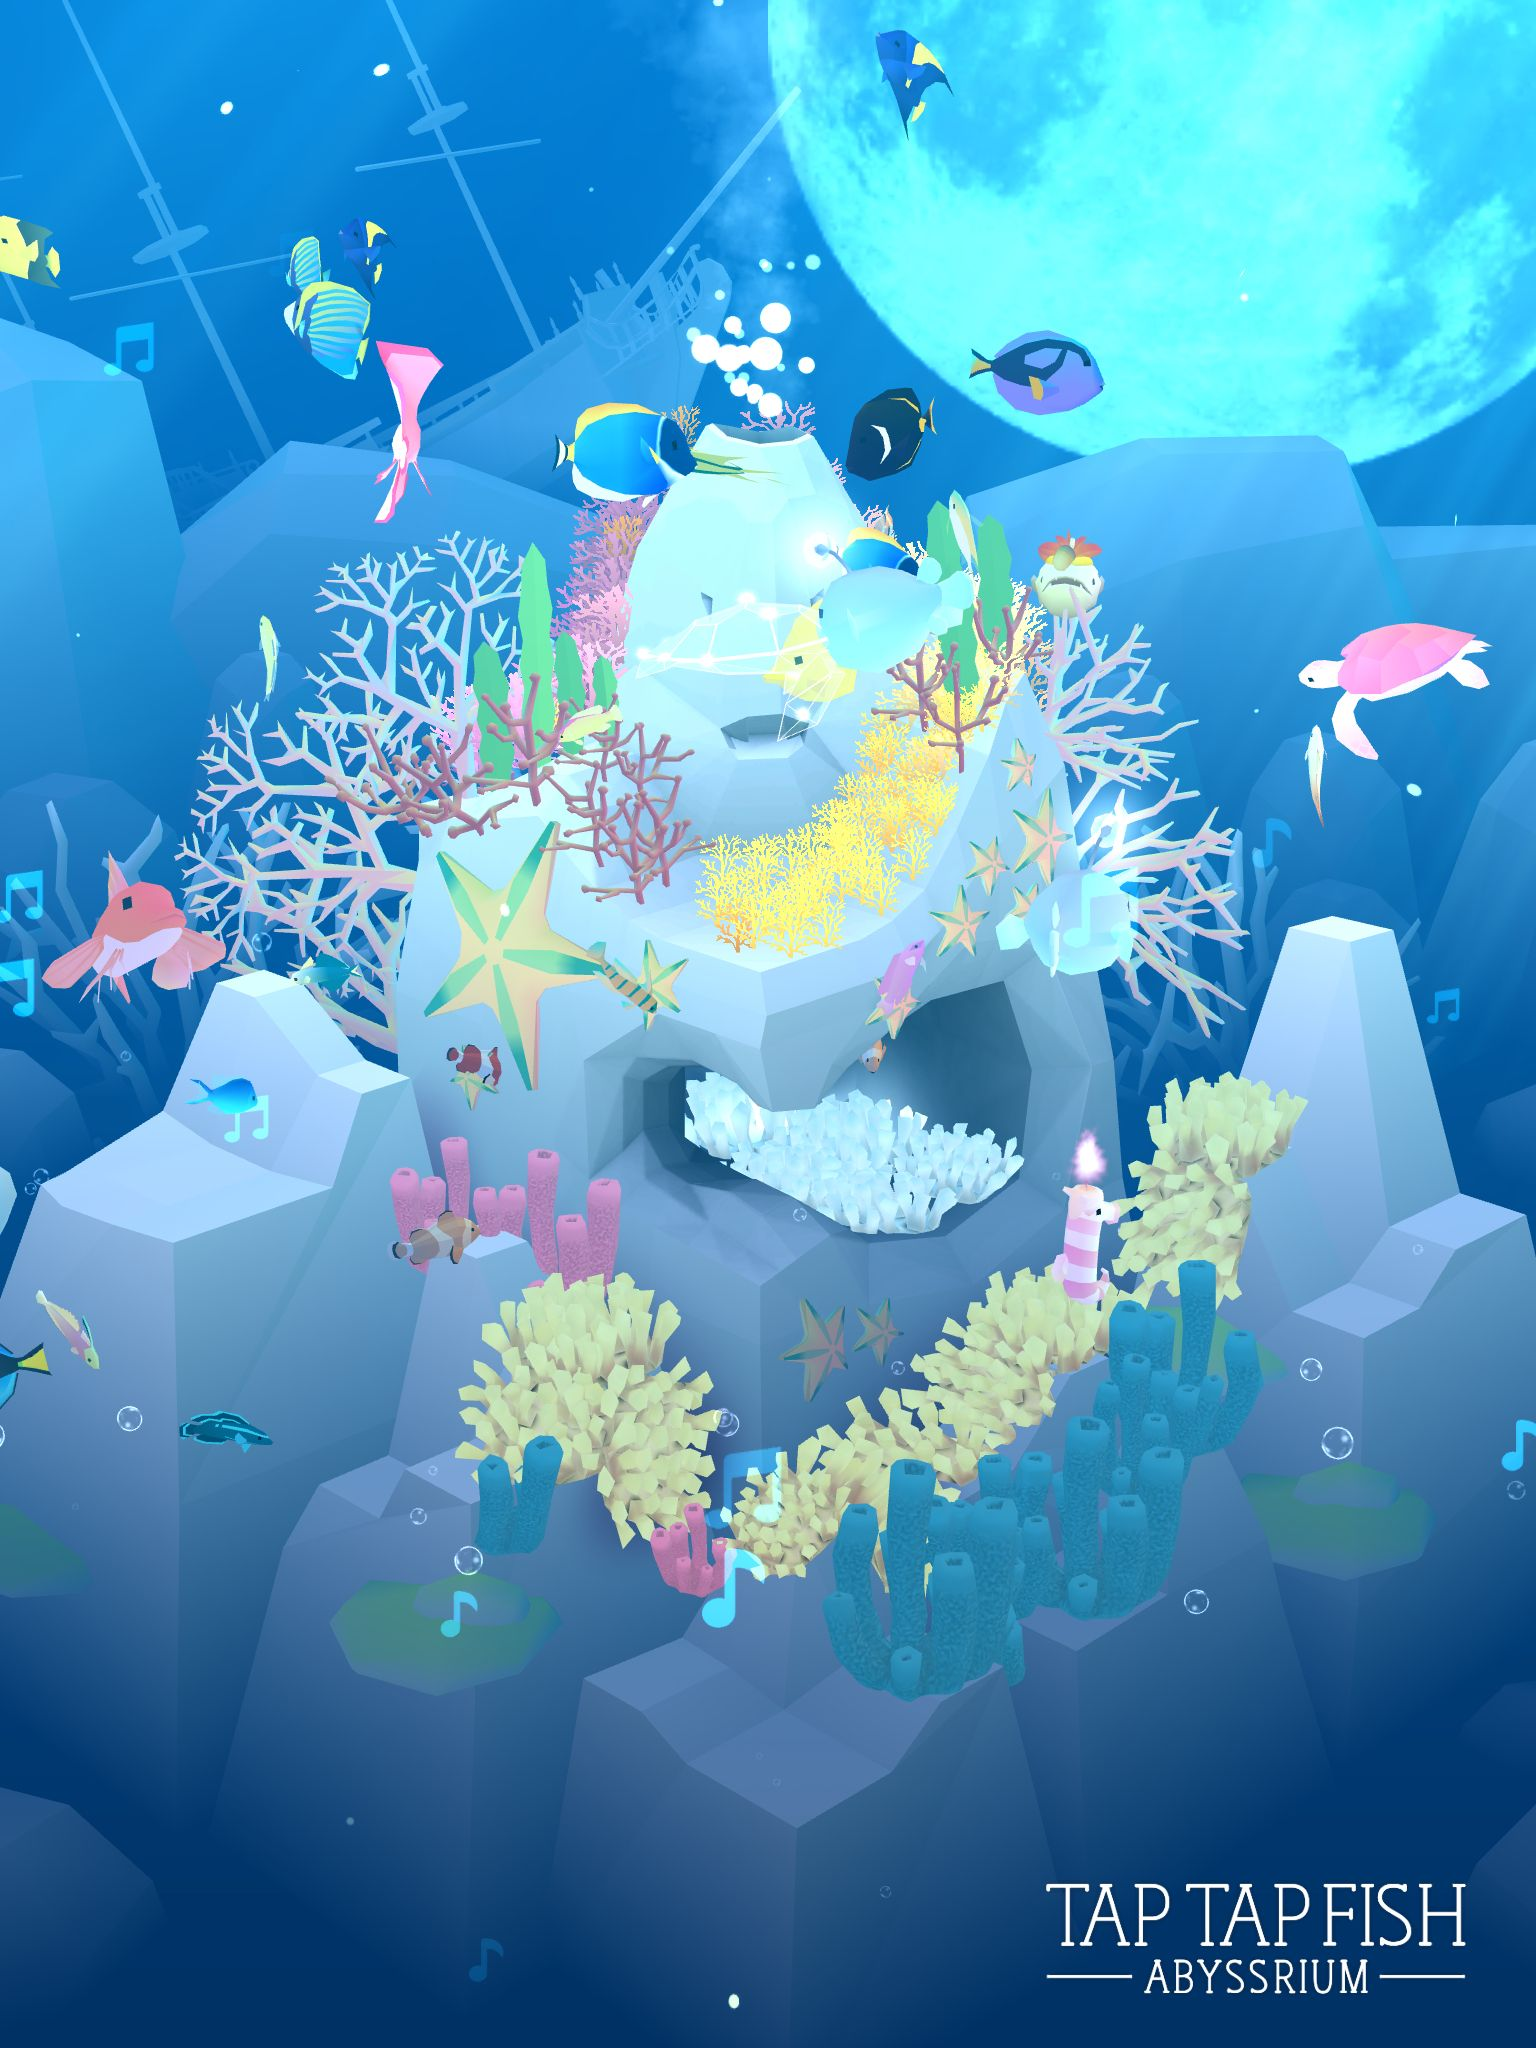 My AbyssRium) taptapfish Download http//onelink.to